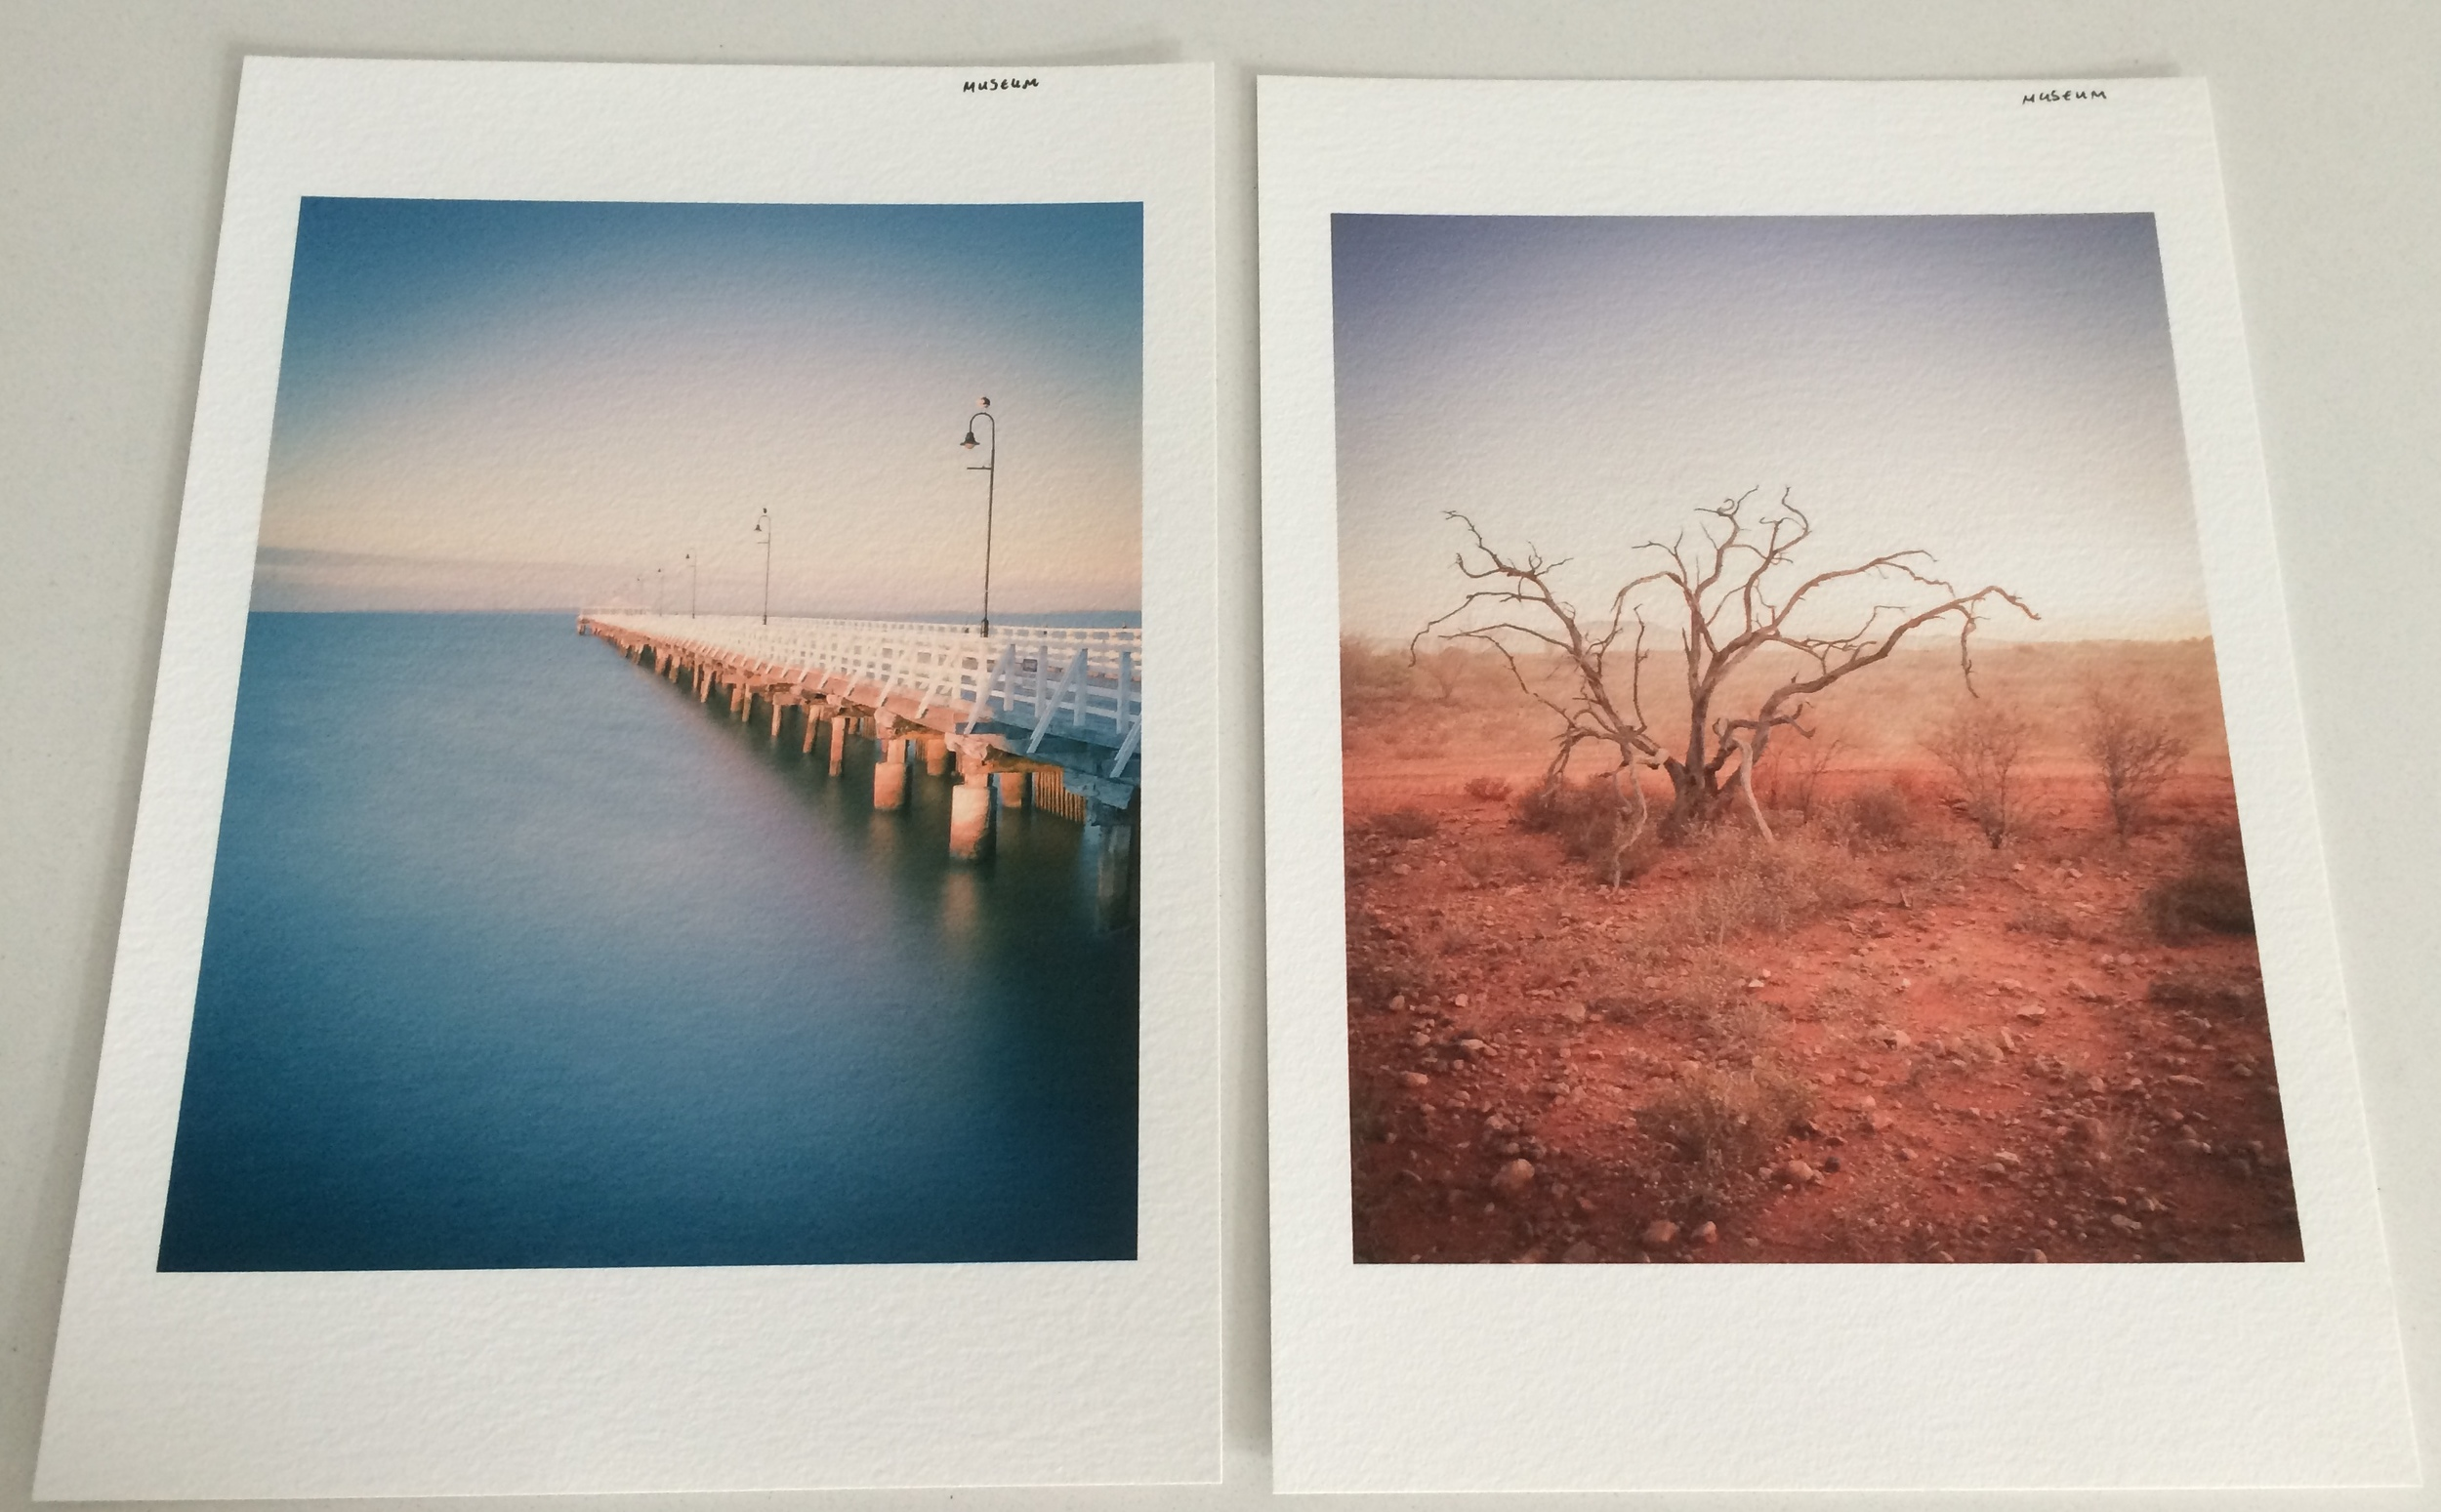 Shorncliffe Pier and The Red Centre on Museum